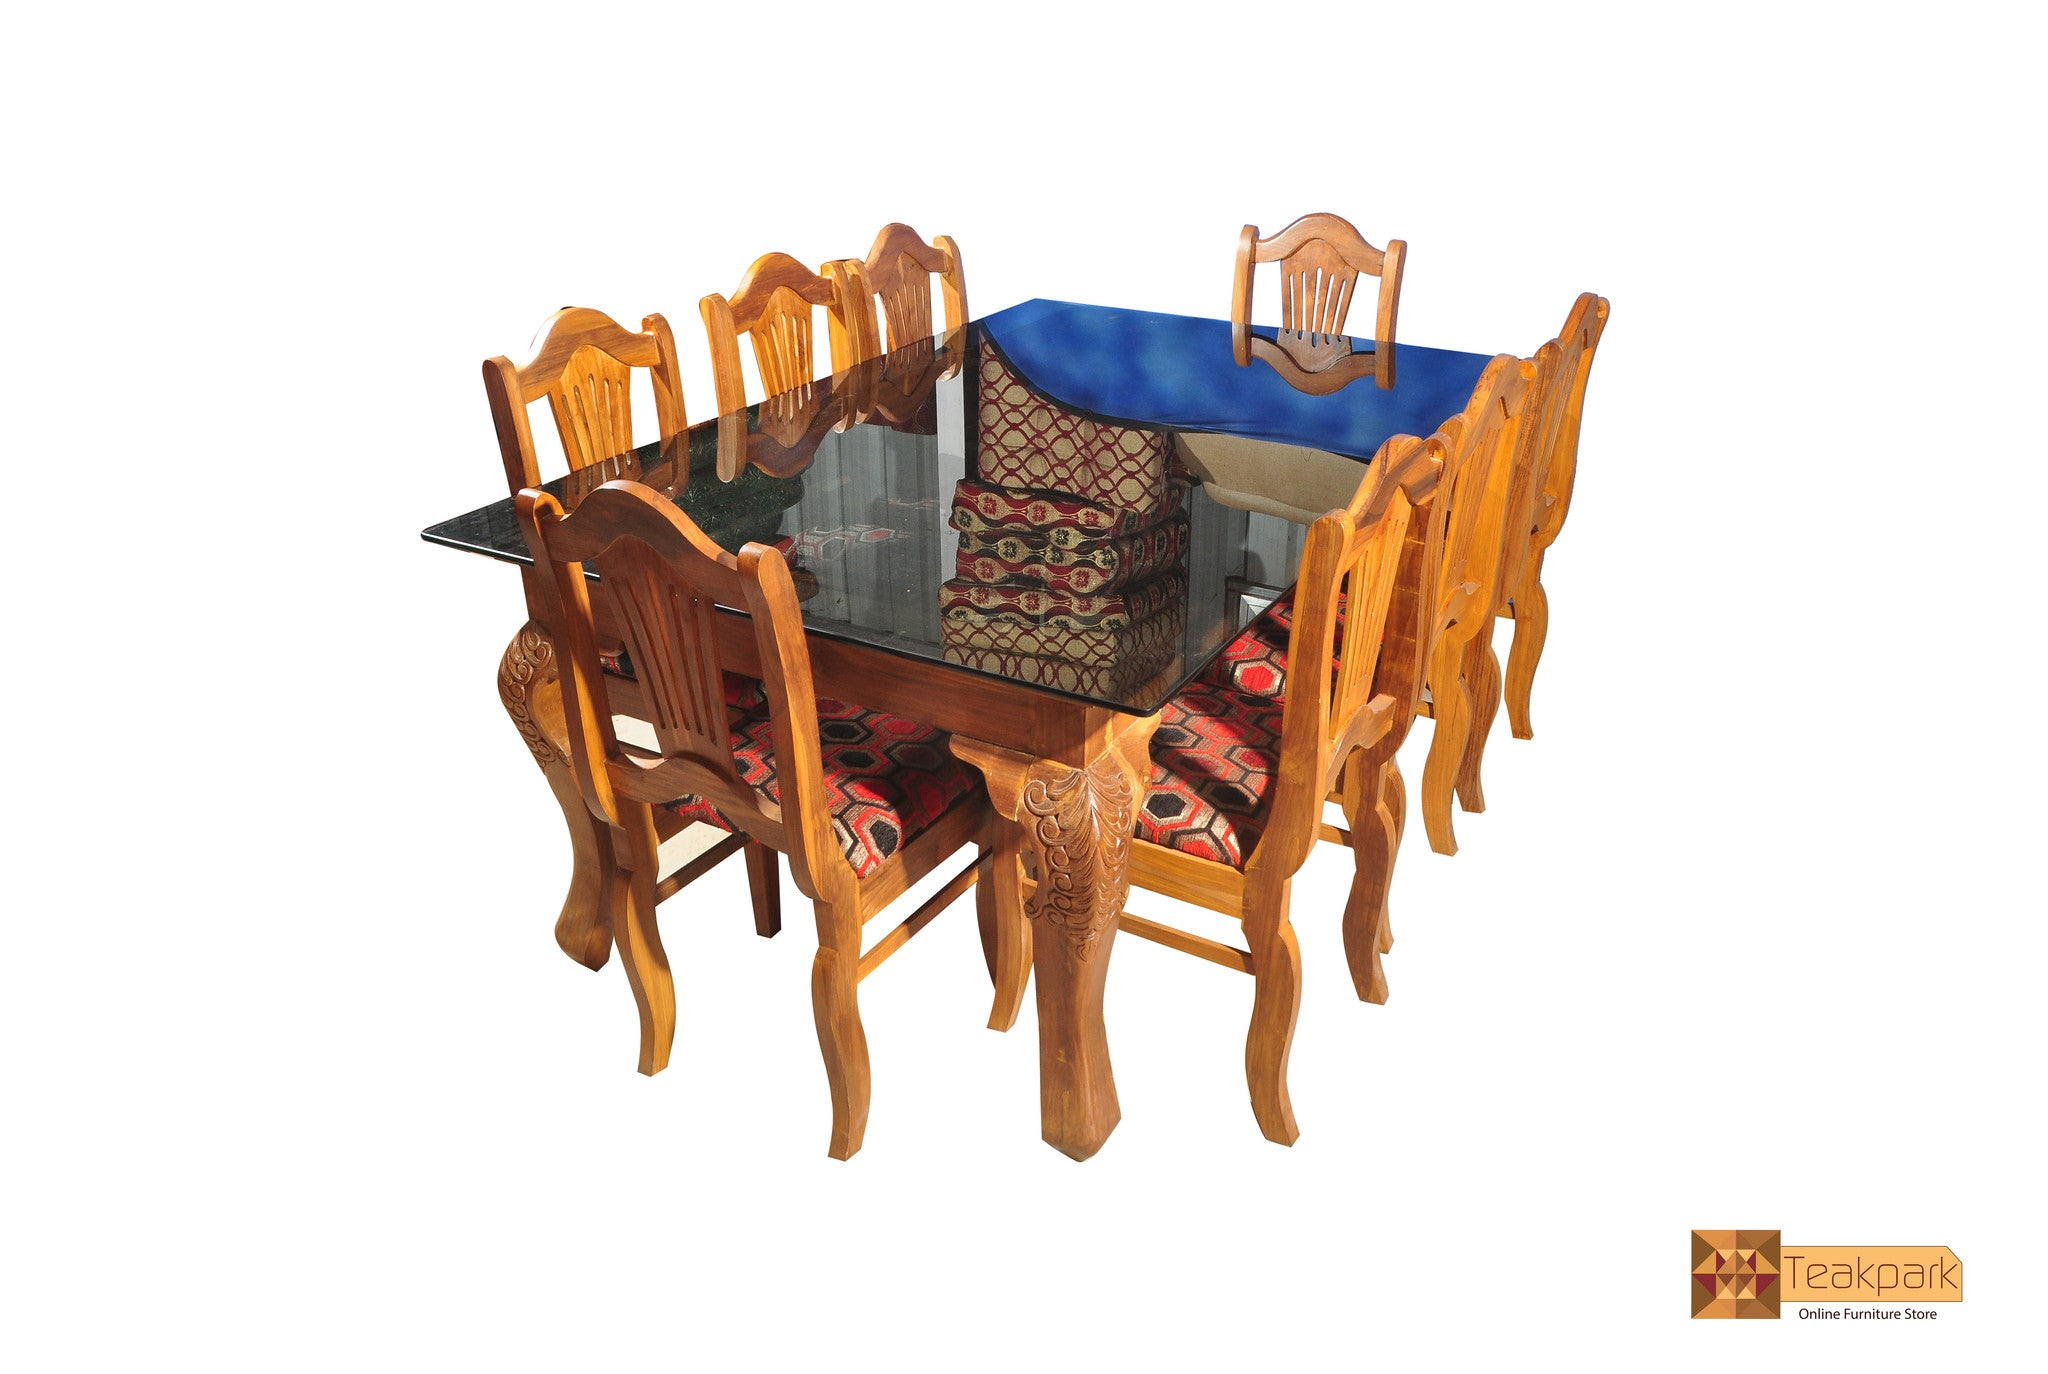 Kaveri Teak Wood Dining Set Glass Top Table With 8 Chairs Teakpark